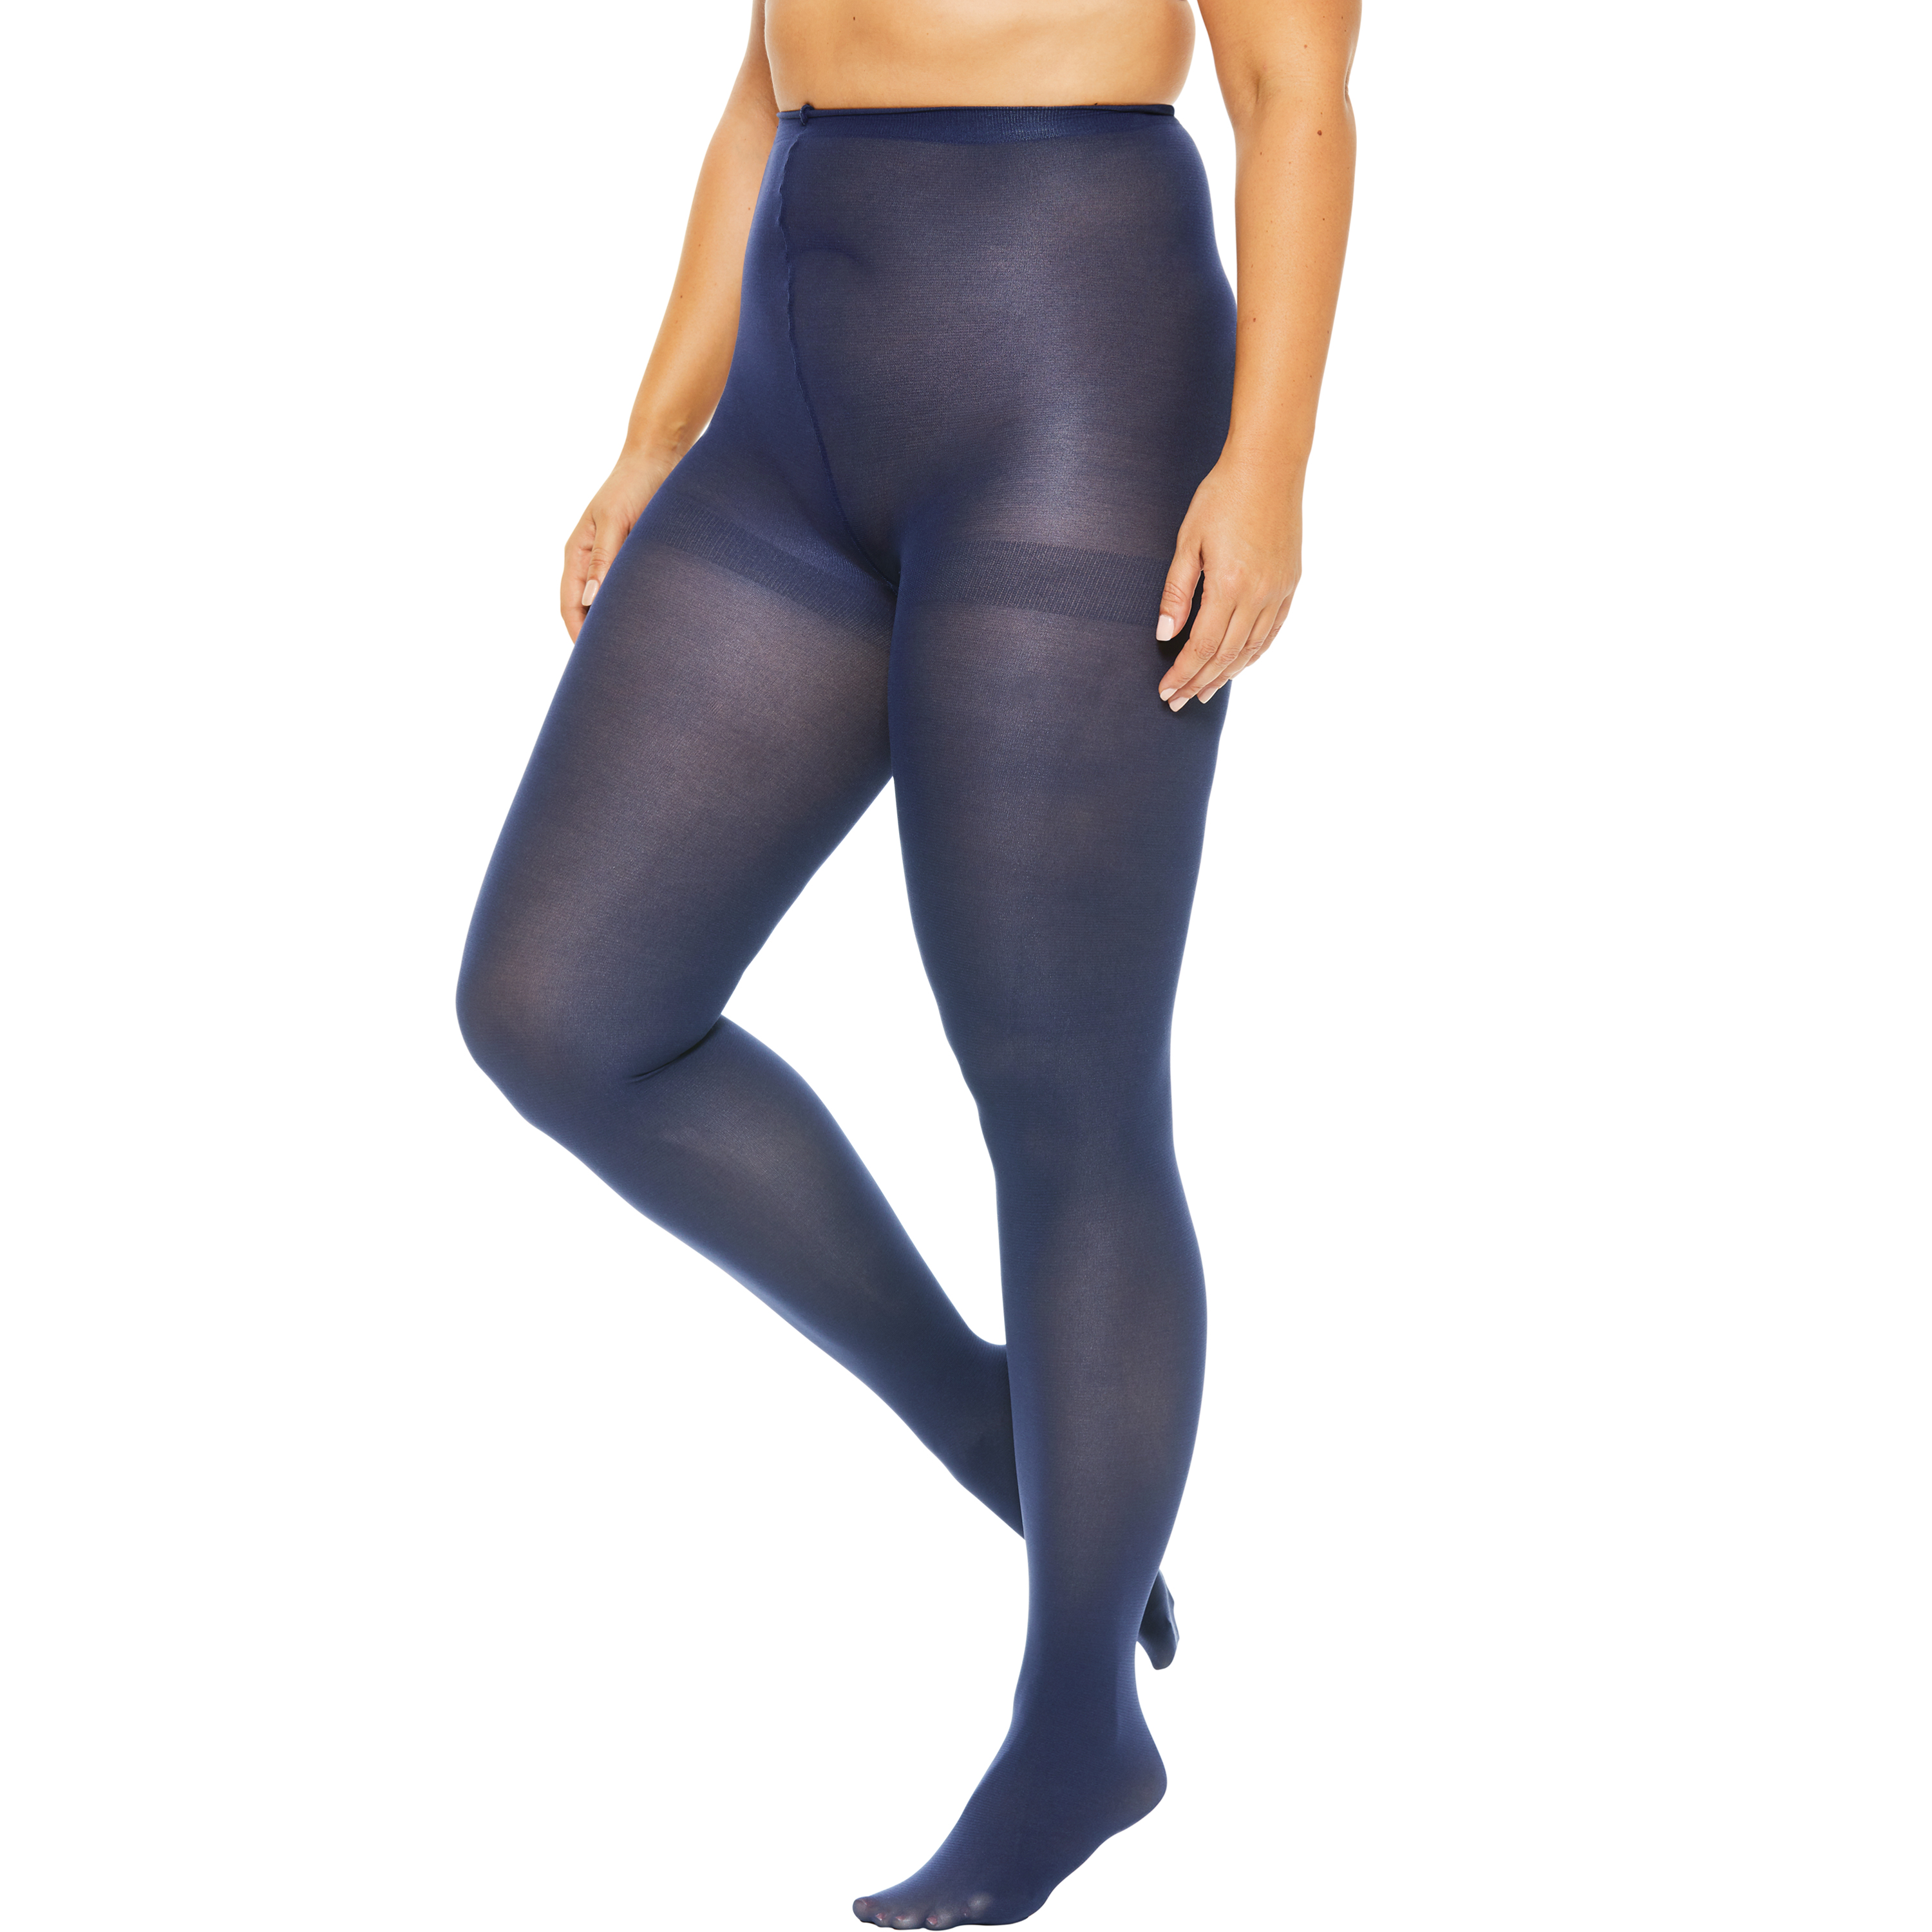 Plus-Size Hosiery Collections : plus size tights